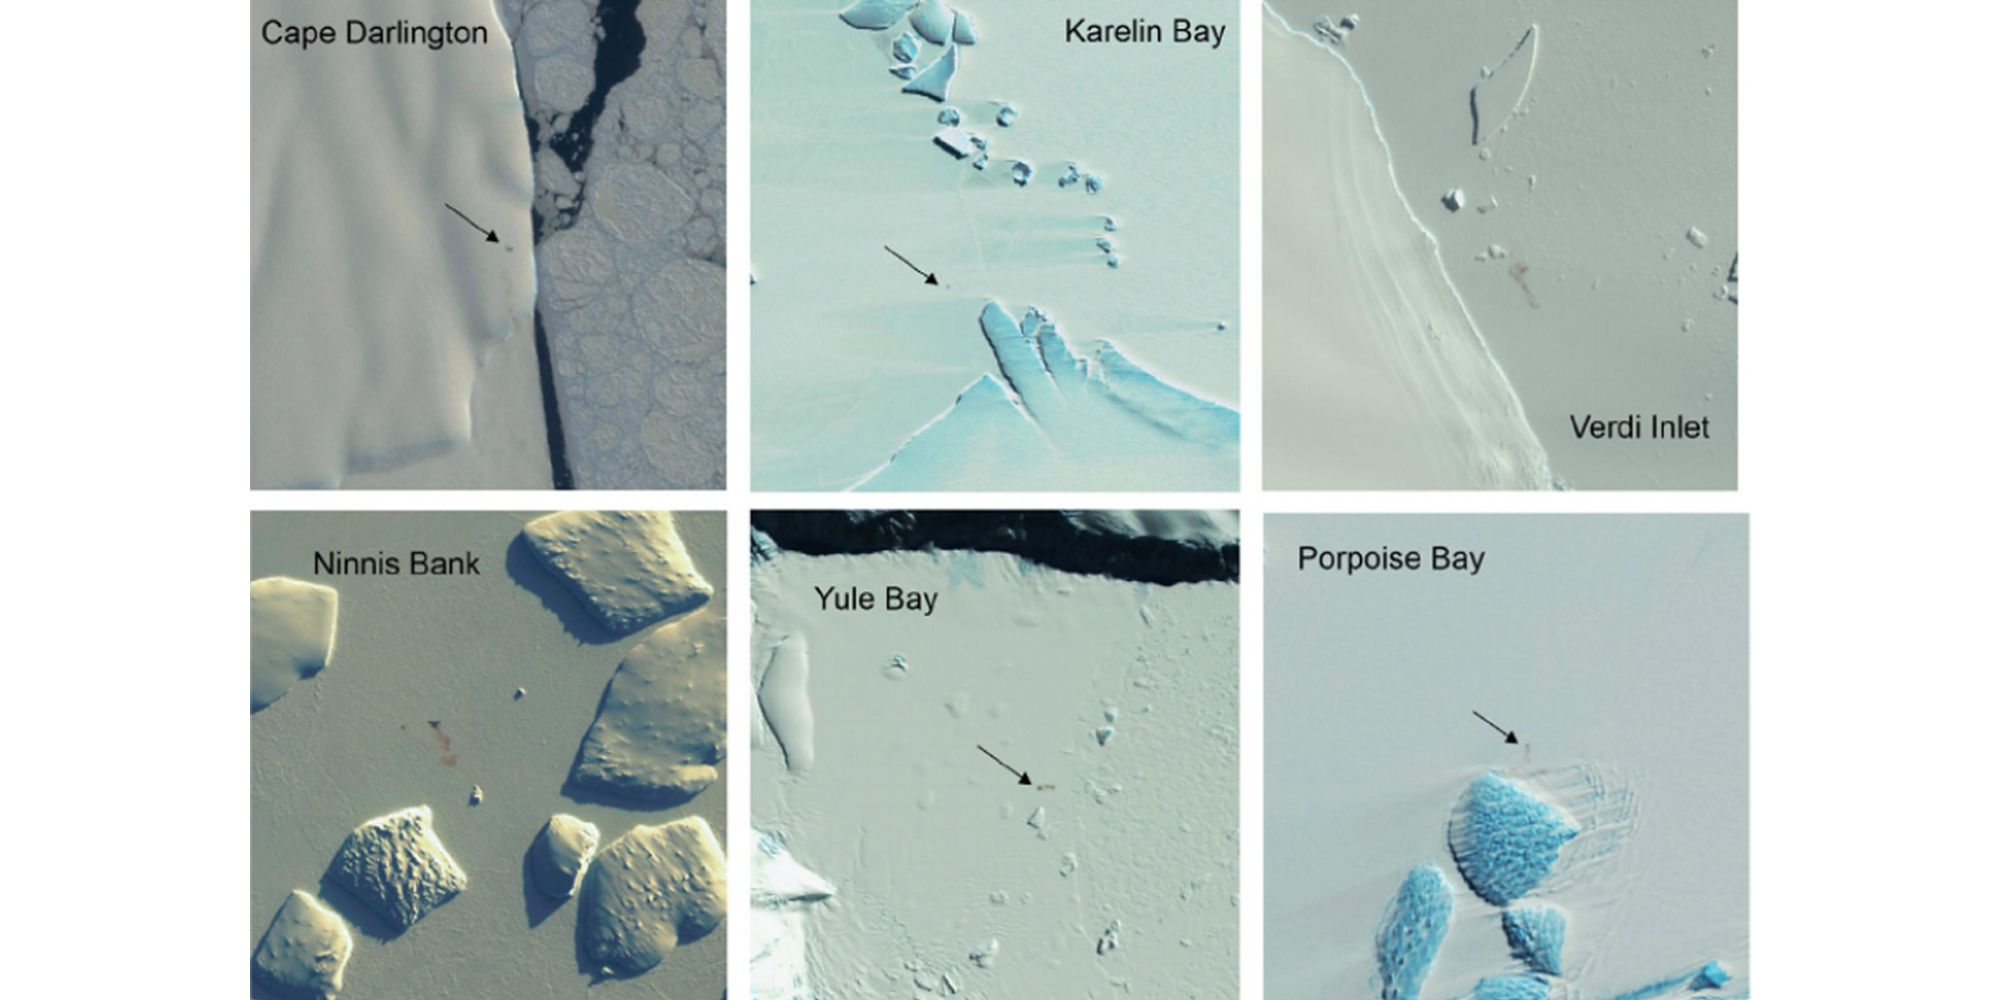 Scientists Just Discovered 11 New Emperor Penguin Colonies. From Space.